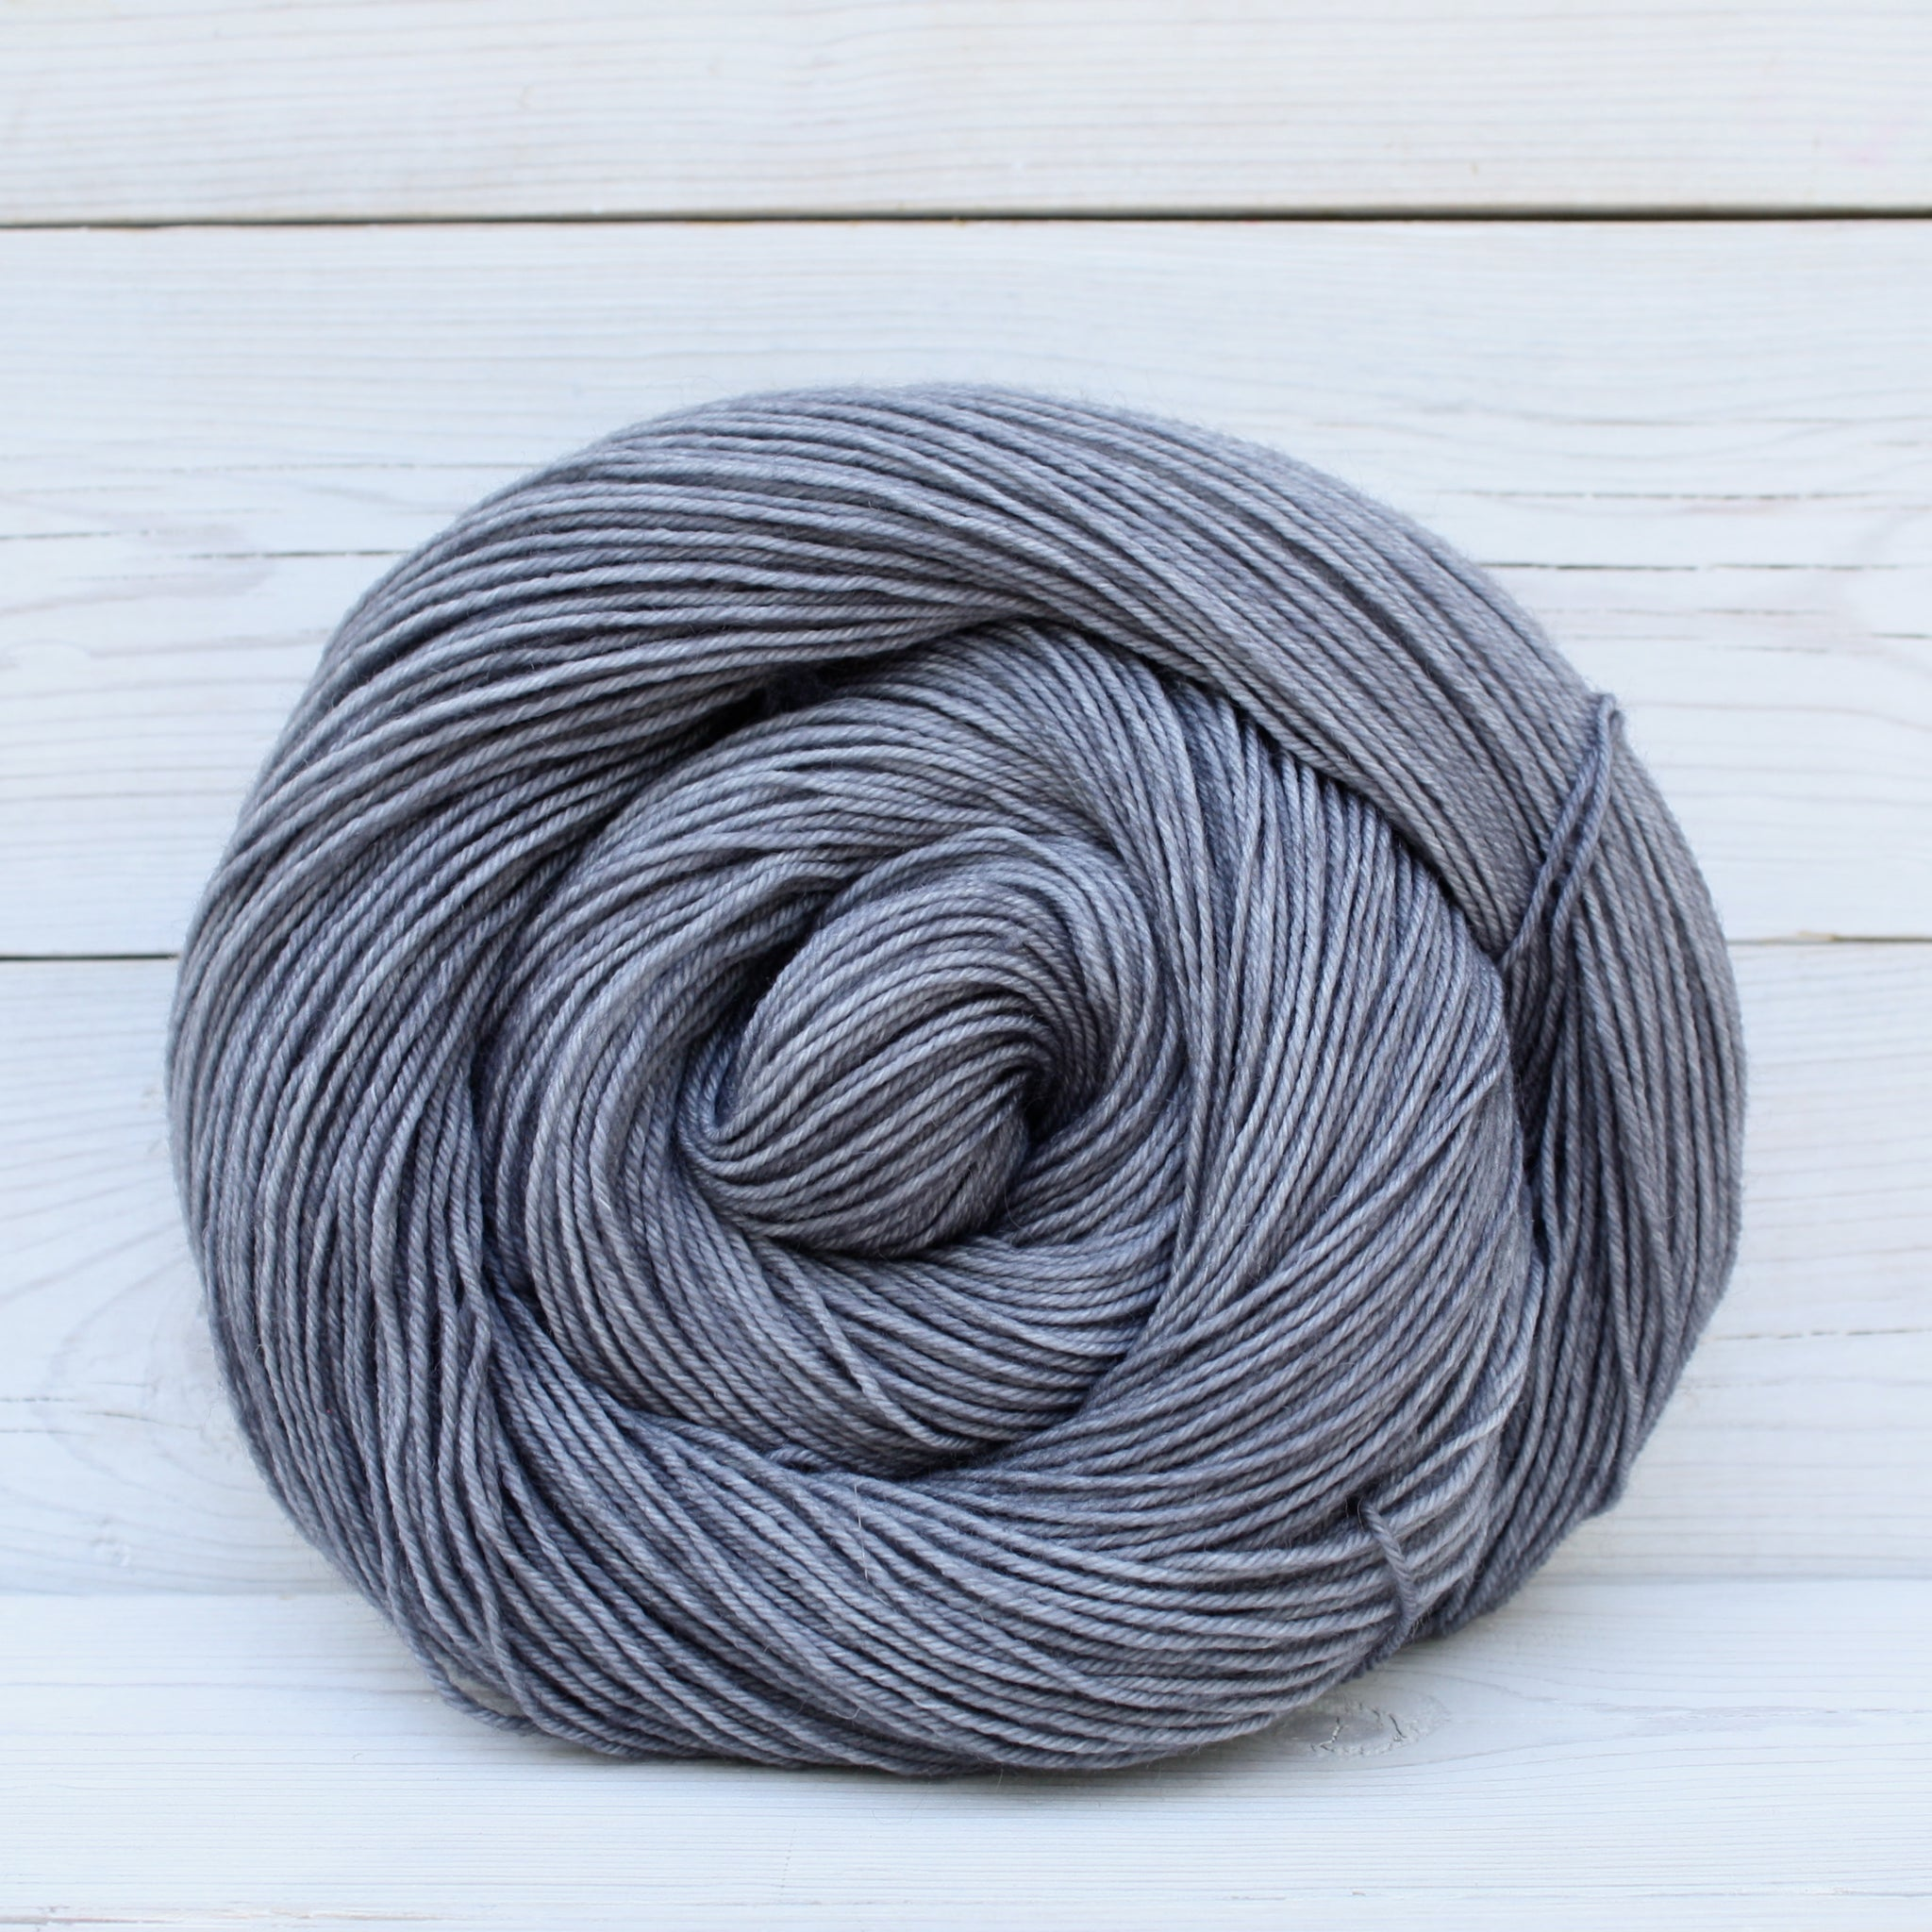 Ariel Yarn | Colorway: Pewter